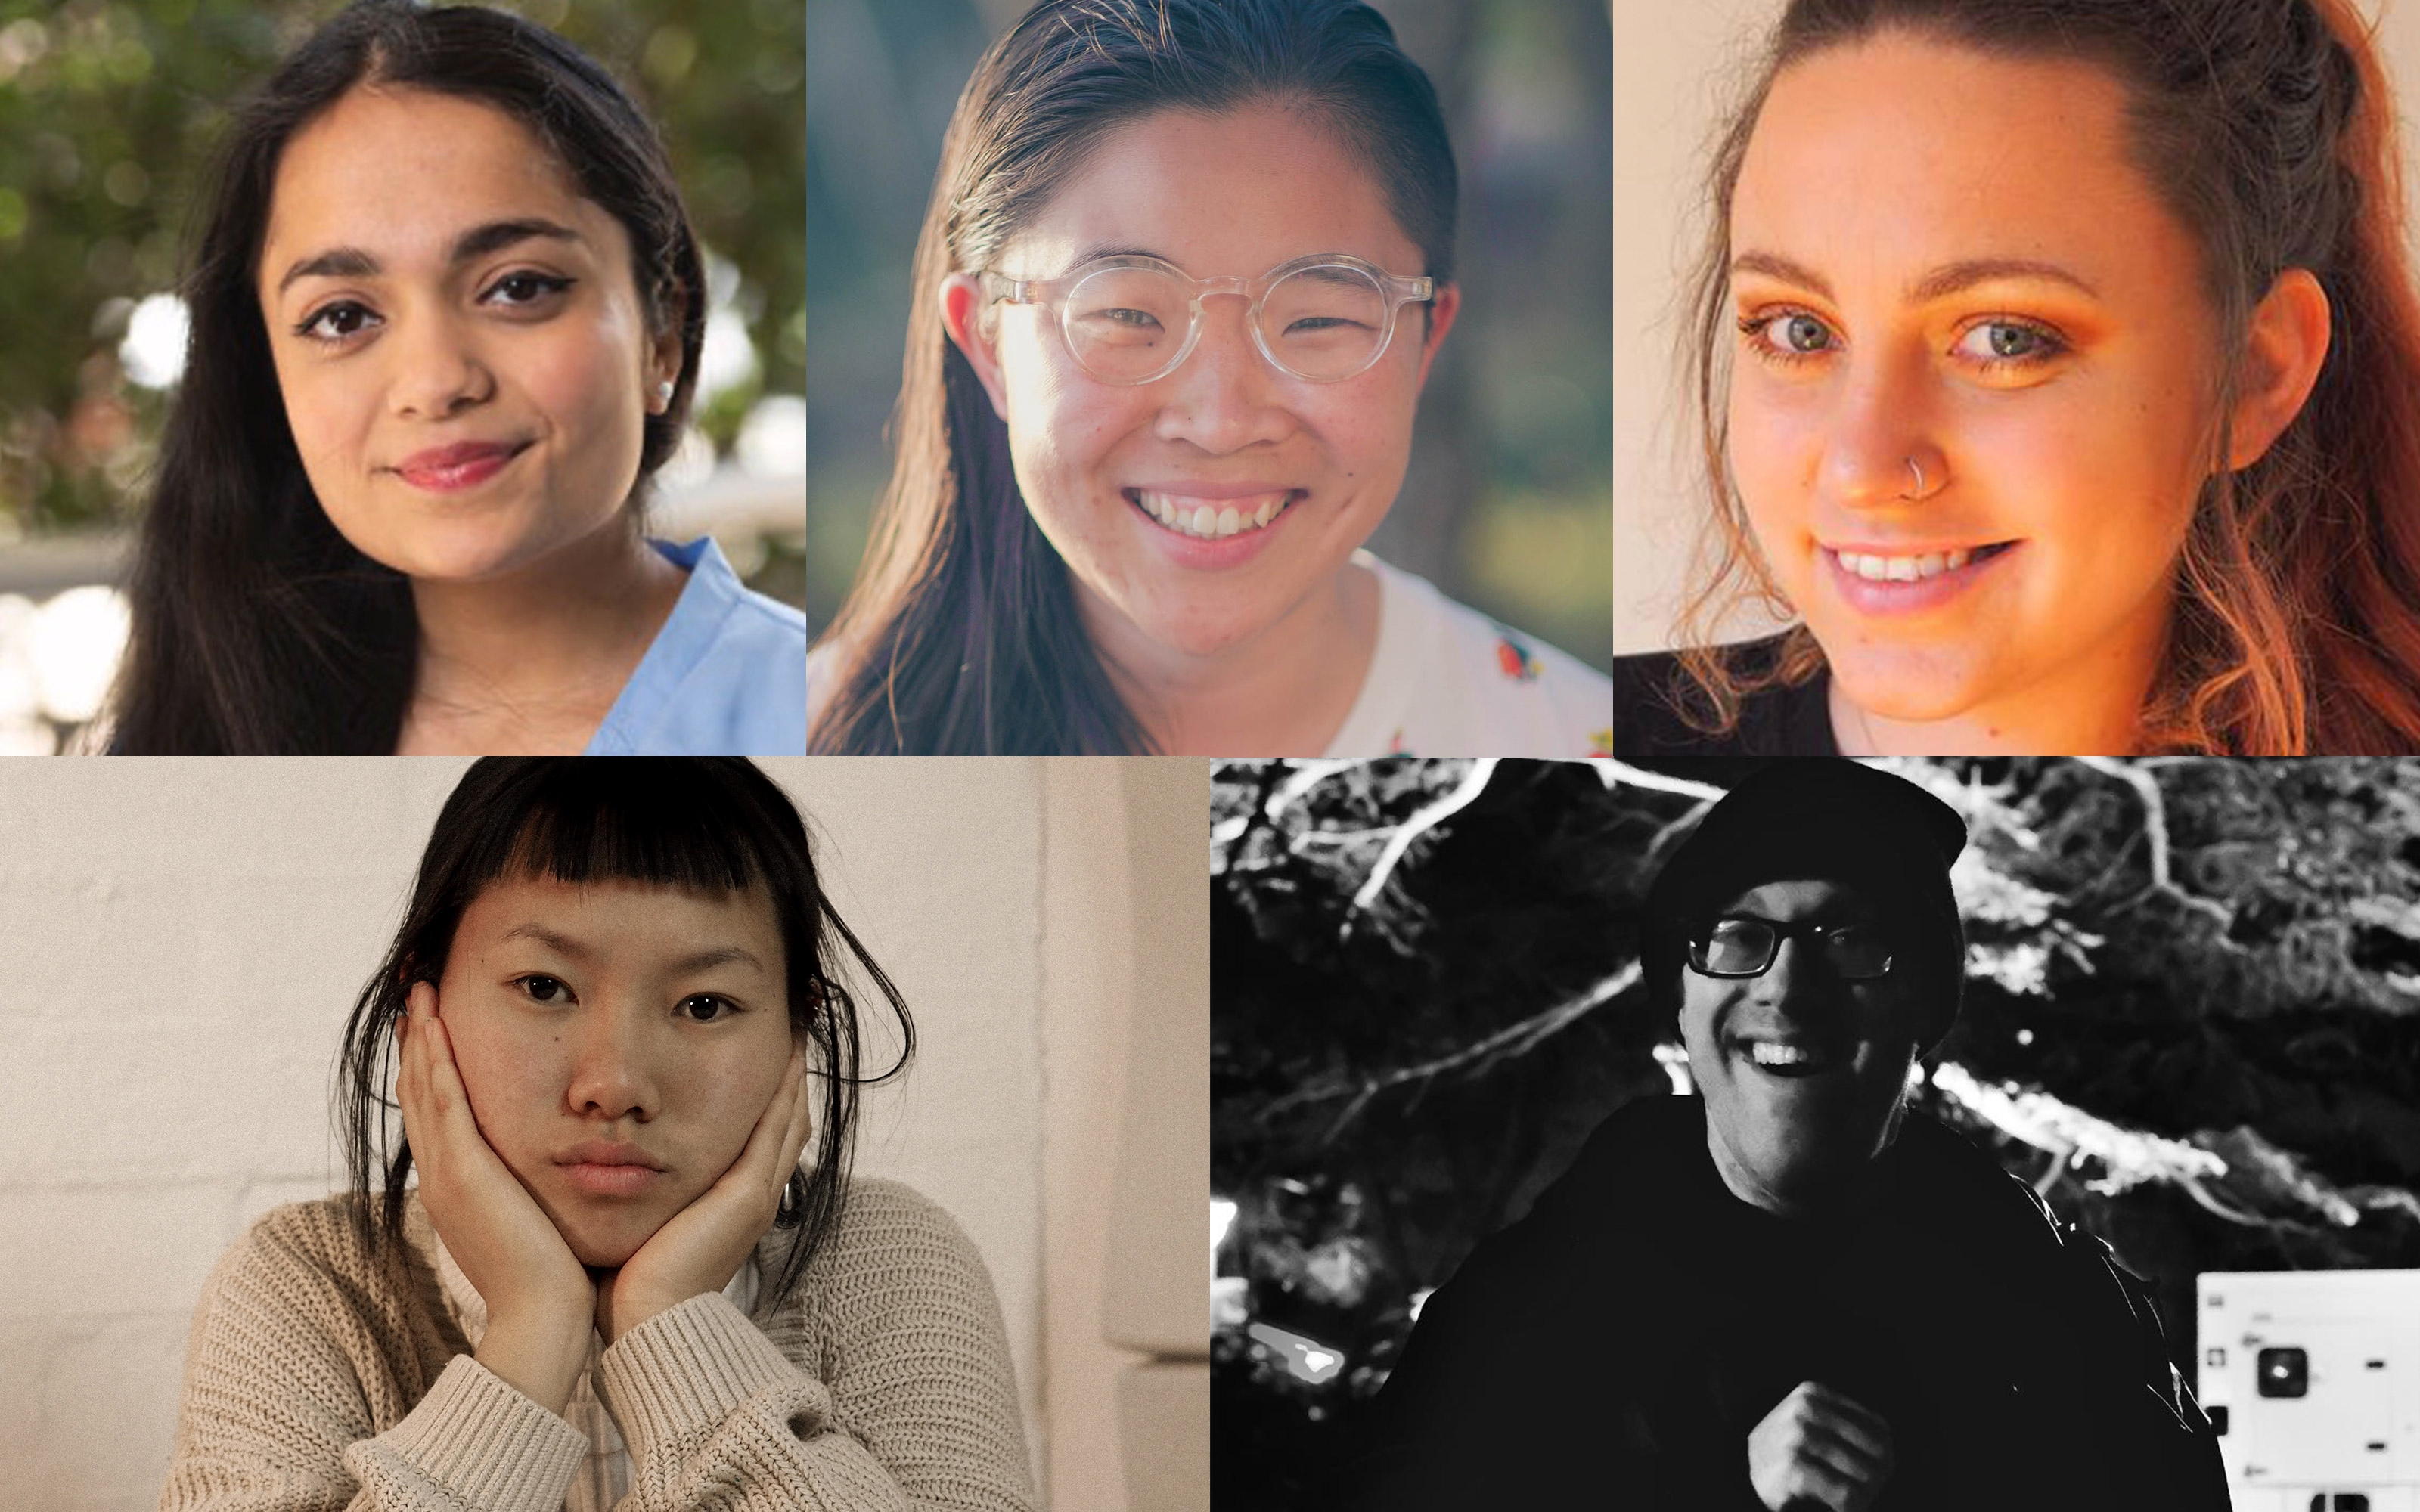 Composite image of Karishma Luthria, Linh Do, Maddison Miller, Nicole Pingon and Phineas Meere